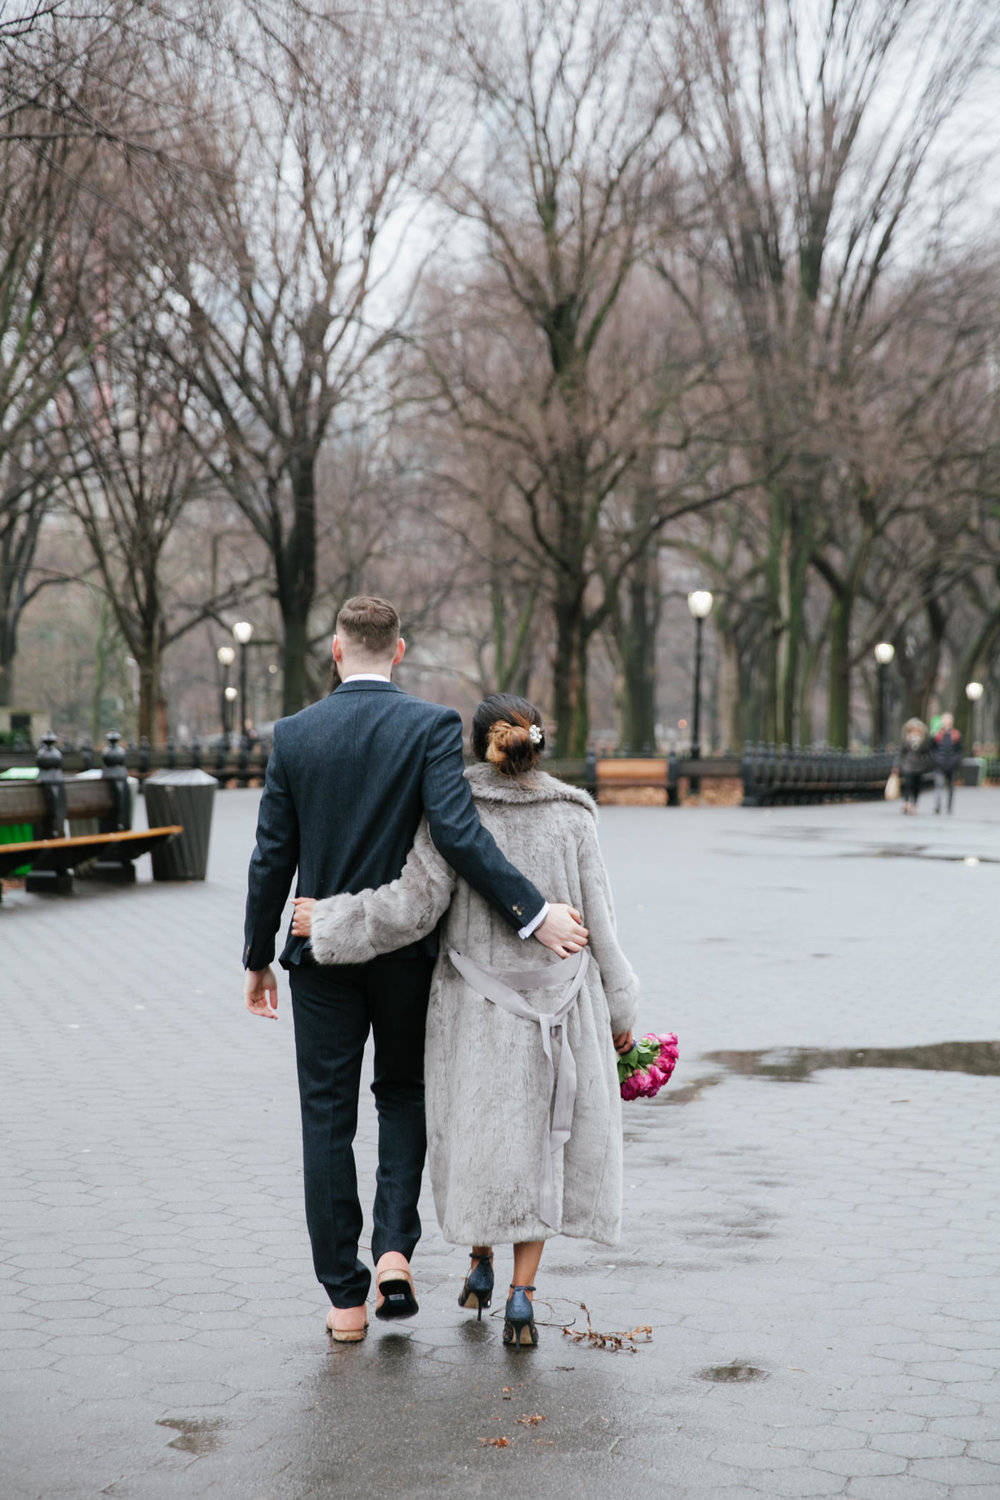 Central-park-wedding-by-Tanya-Isaeva-82.jpg